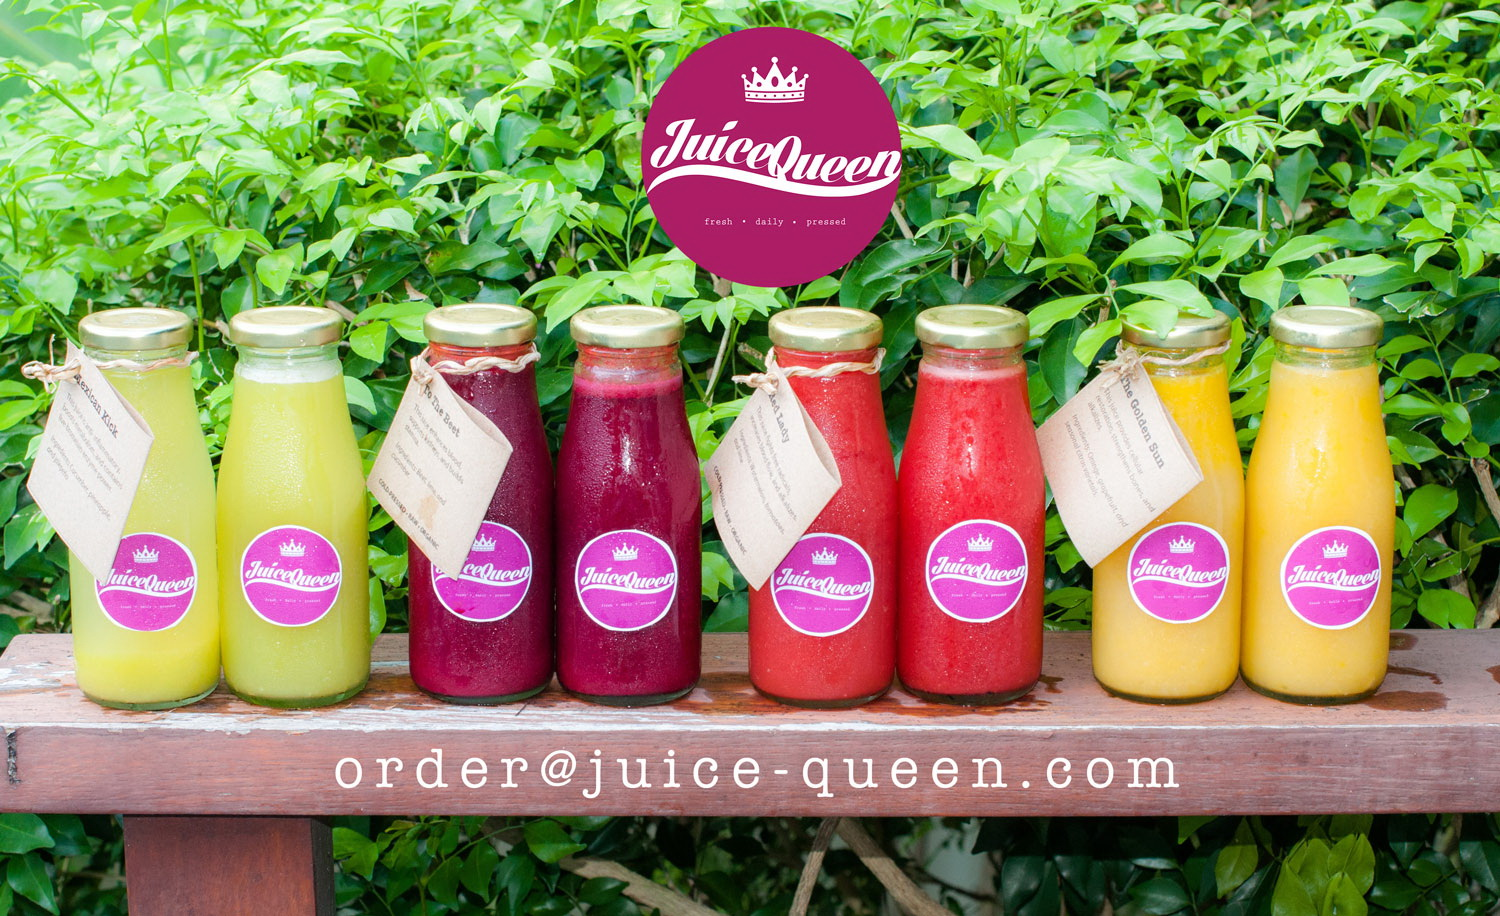 Queen S Slow Juicer : Juice Queen Samui delivers daily pressed juices for those interested in good health - Samui Times